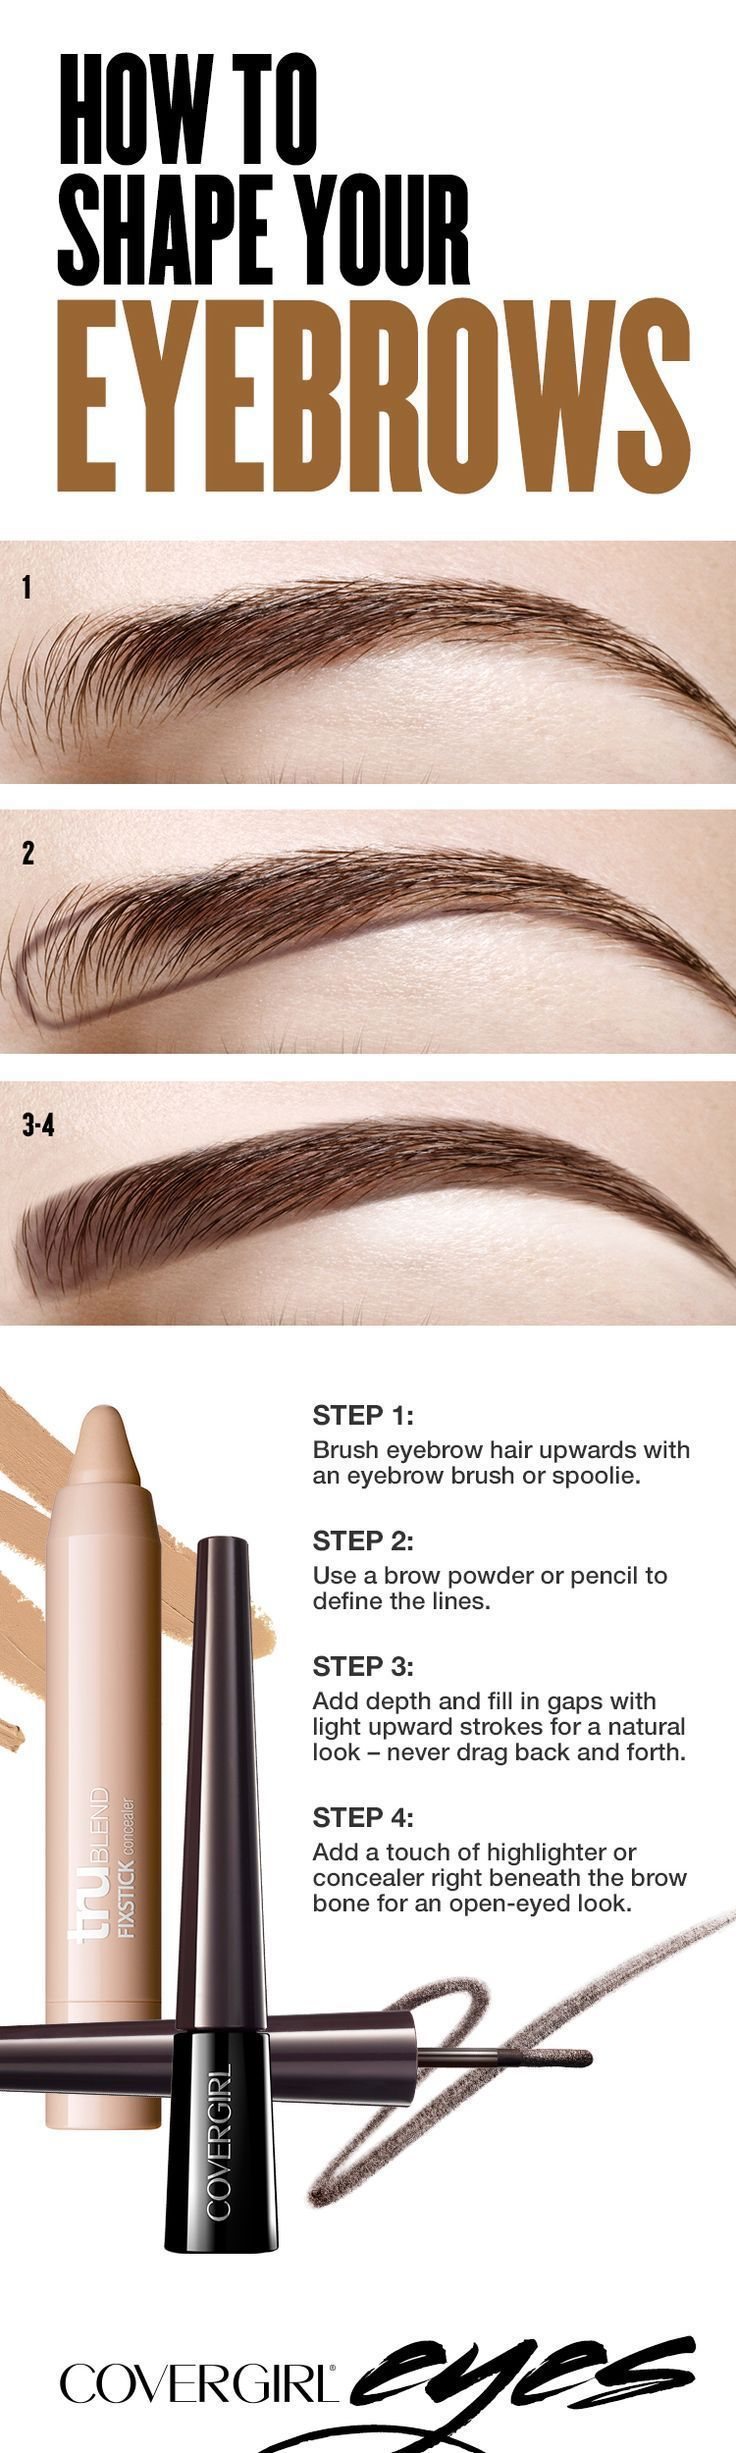 A bold eyebrow isn?t only on trend, it automatically helps you look more pulled together. Easy Guide, How To, Tips, and Step By Step Tutorials and DIY Eyebrow Shaping, Waxing, Threading, and Plucking